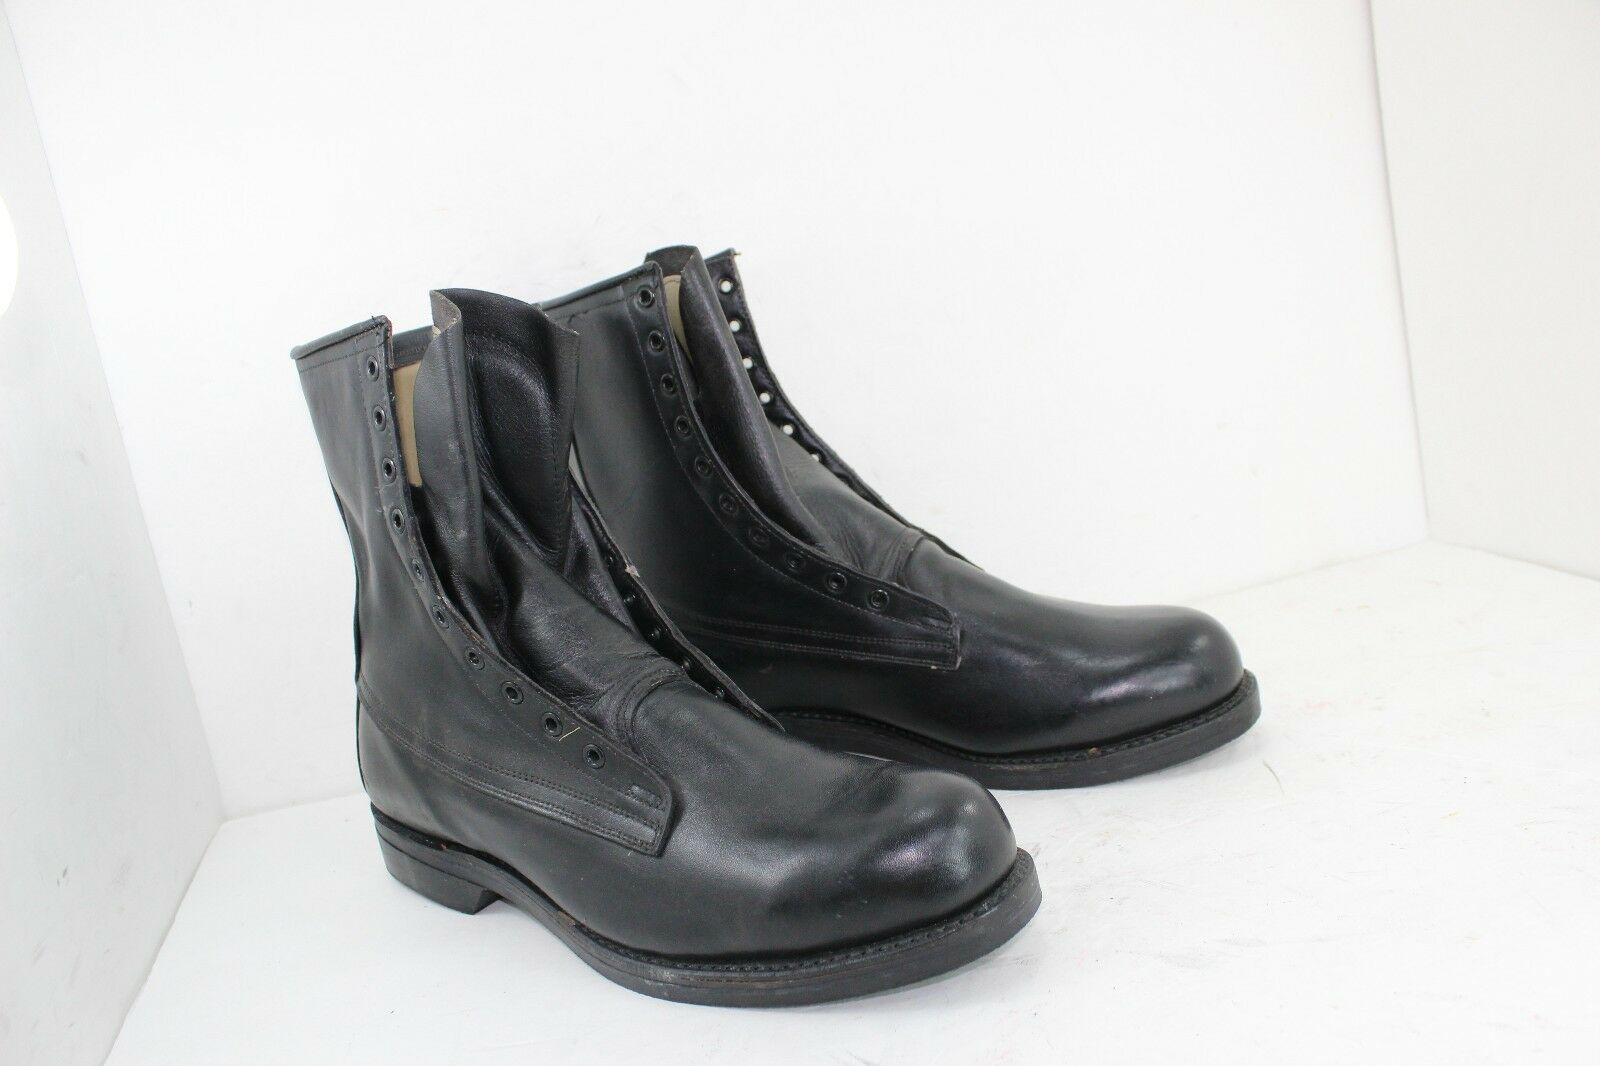 COVE schuhe COMPANY SZ 13 D MADE IN USA MILITARY Stiefel schwarz NEW